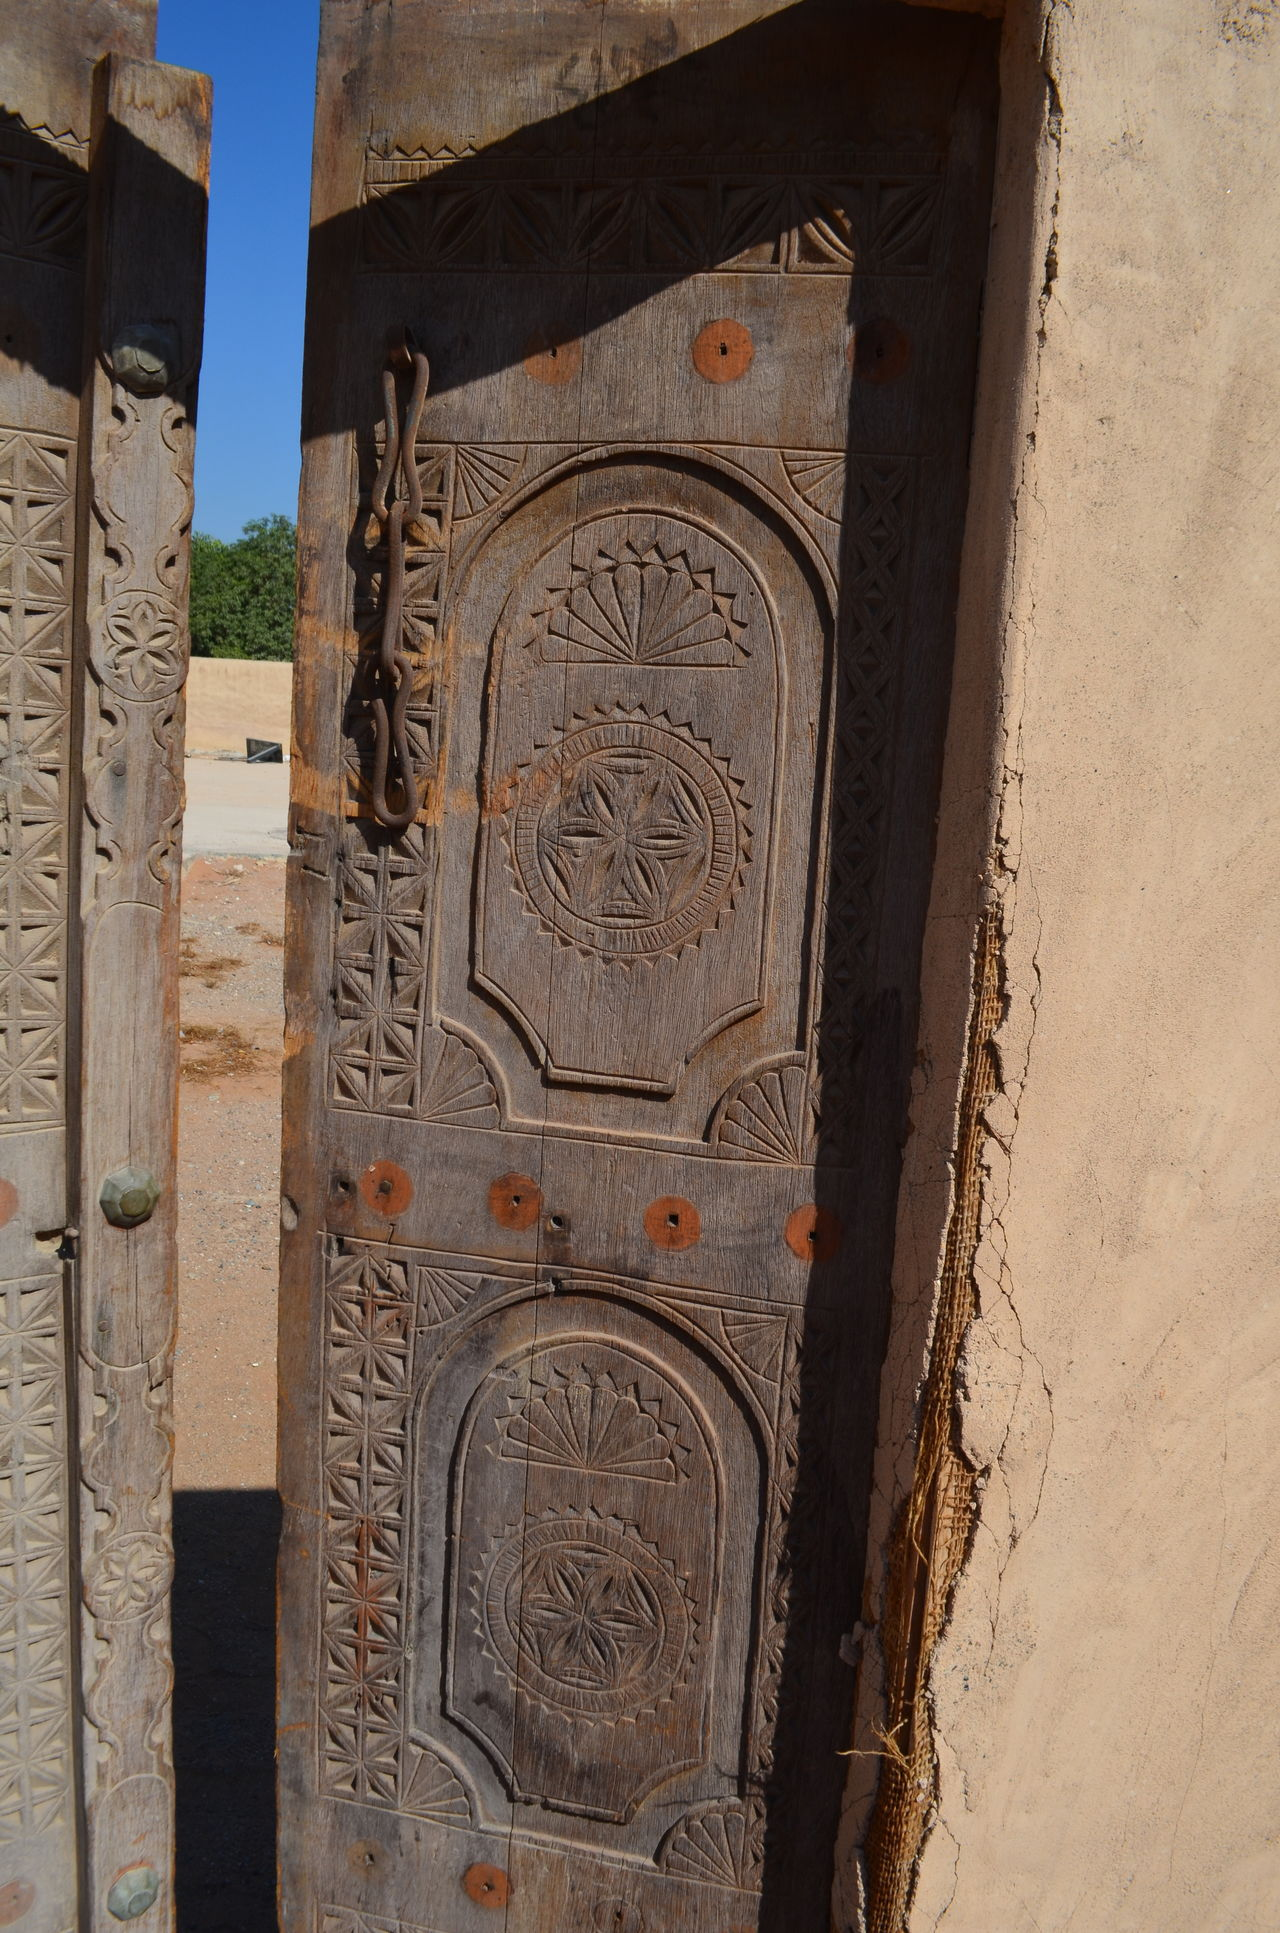 Ajar Architecture Built Structure Close-up Day Door Fort Fujairah Historical Building History No People Outdoors Sky Travel UAE United Arab Emirates Wood Carving Wooden